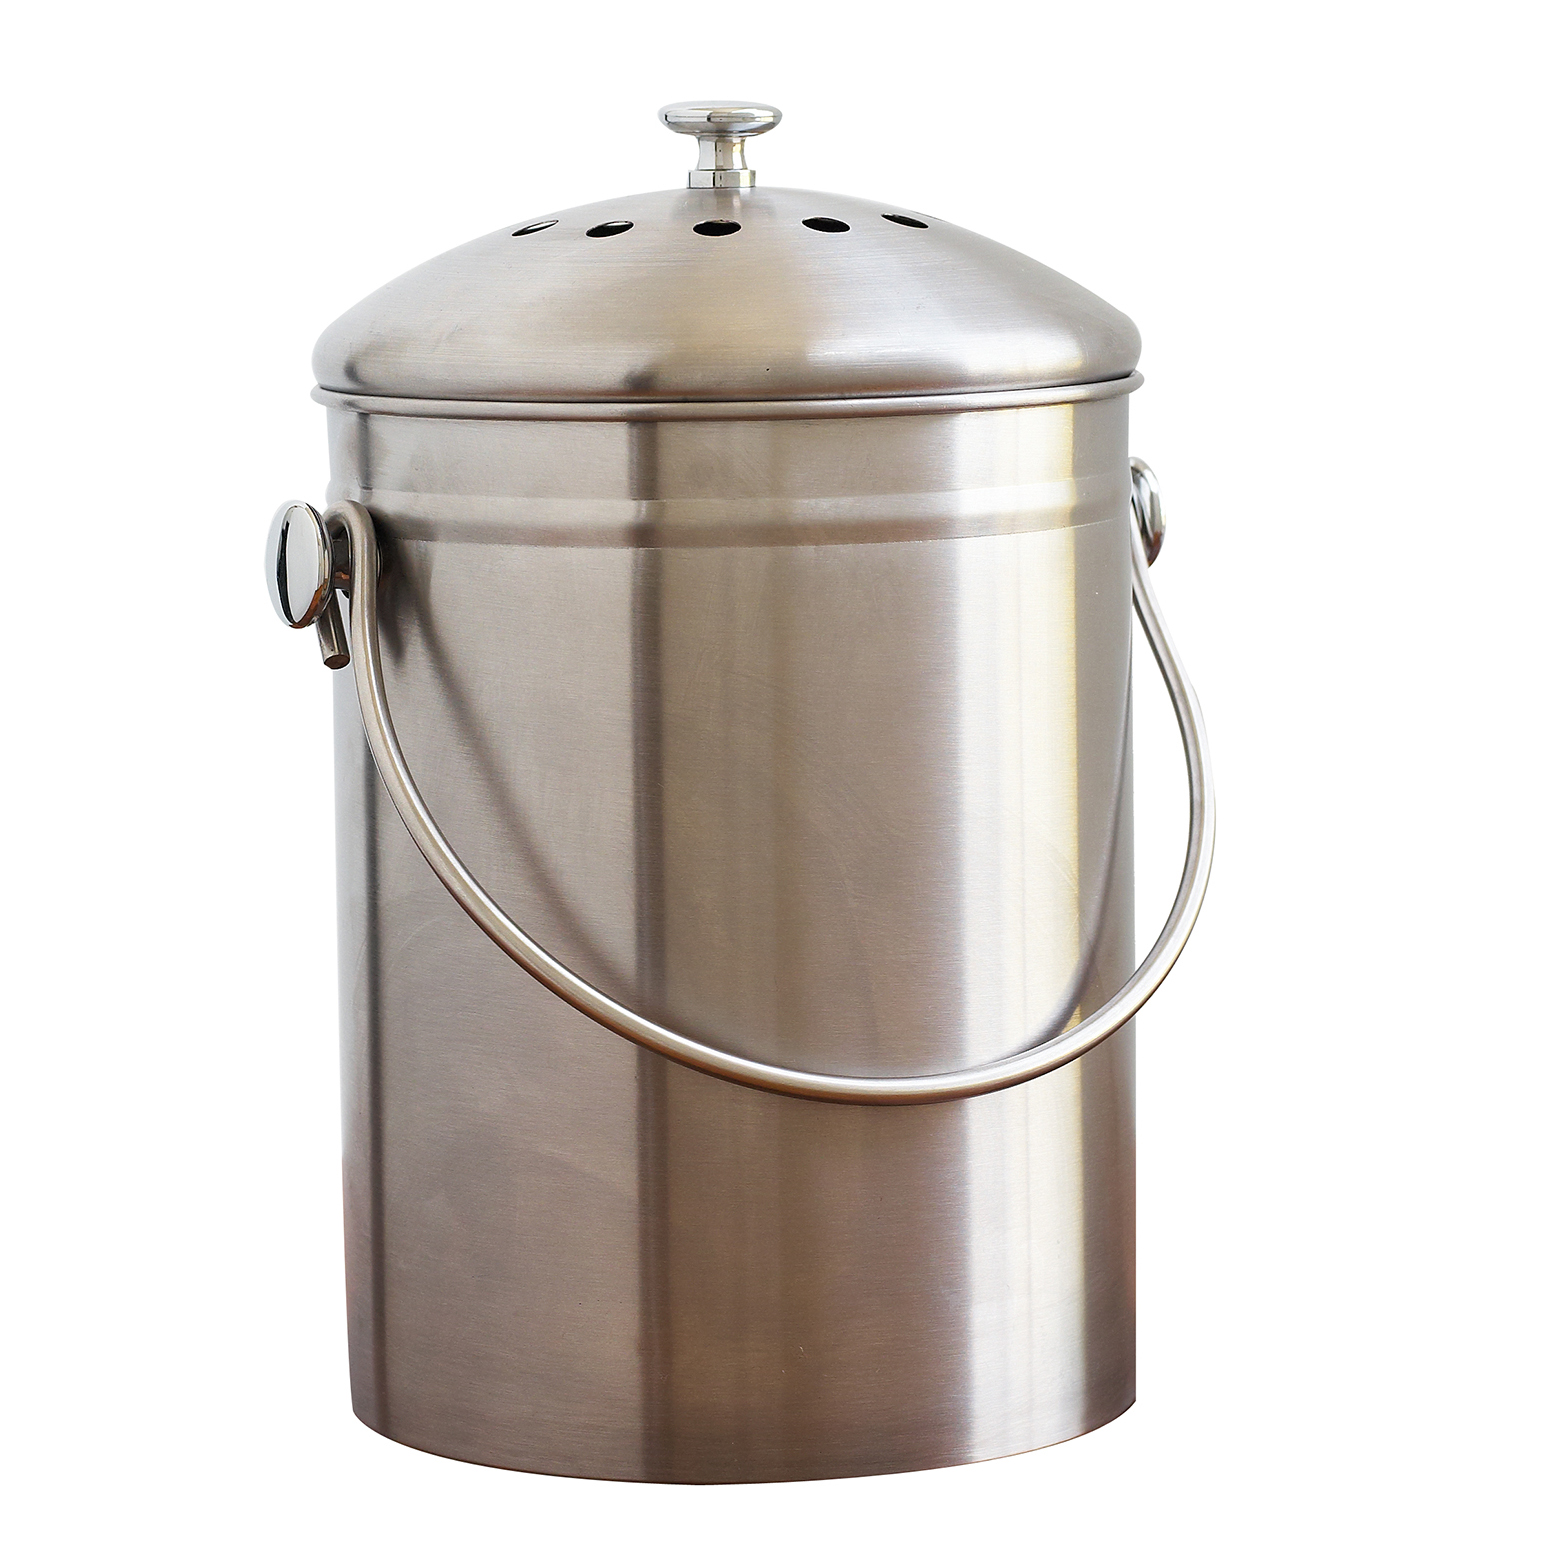 EarthHero - Recycled Stainless Steel Compost Bin - 1.3 Gallon 1